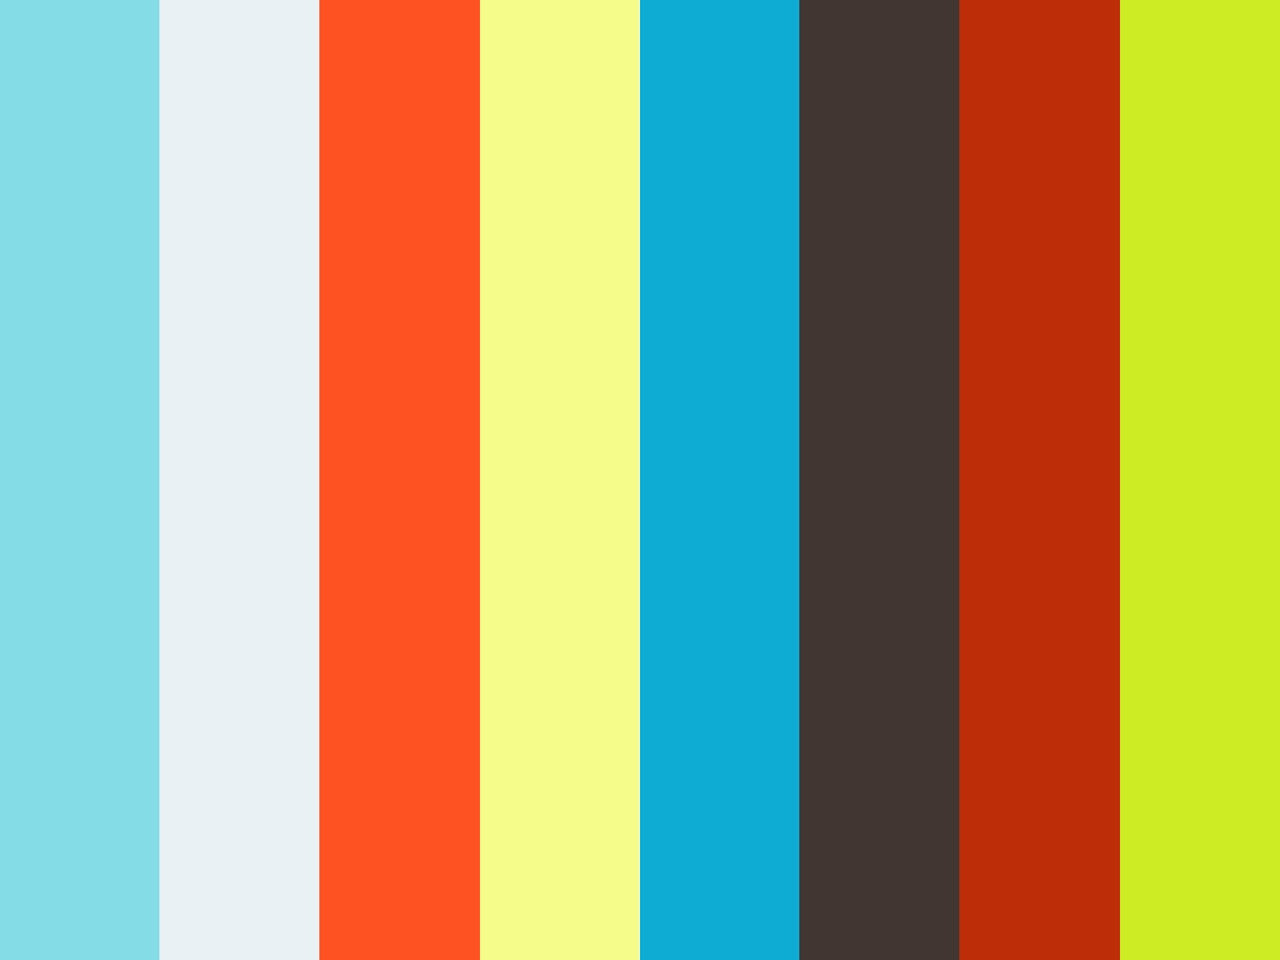 Riverhead Community Coalition Meet & Greet Video 2017